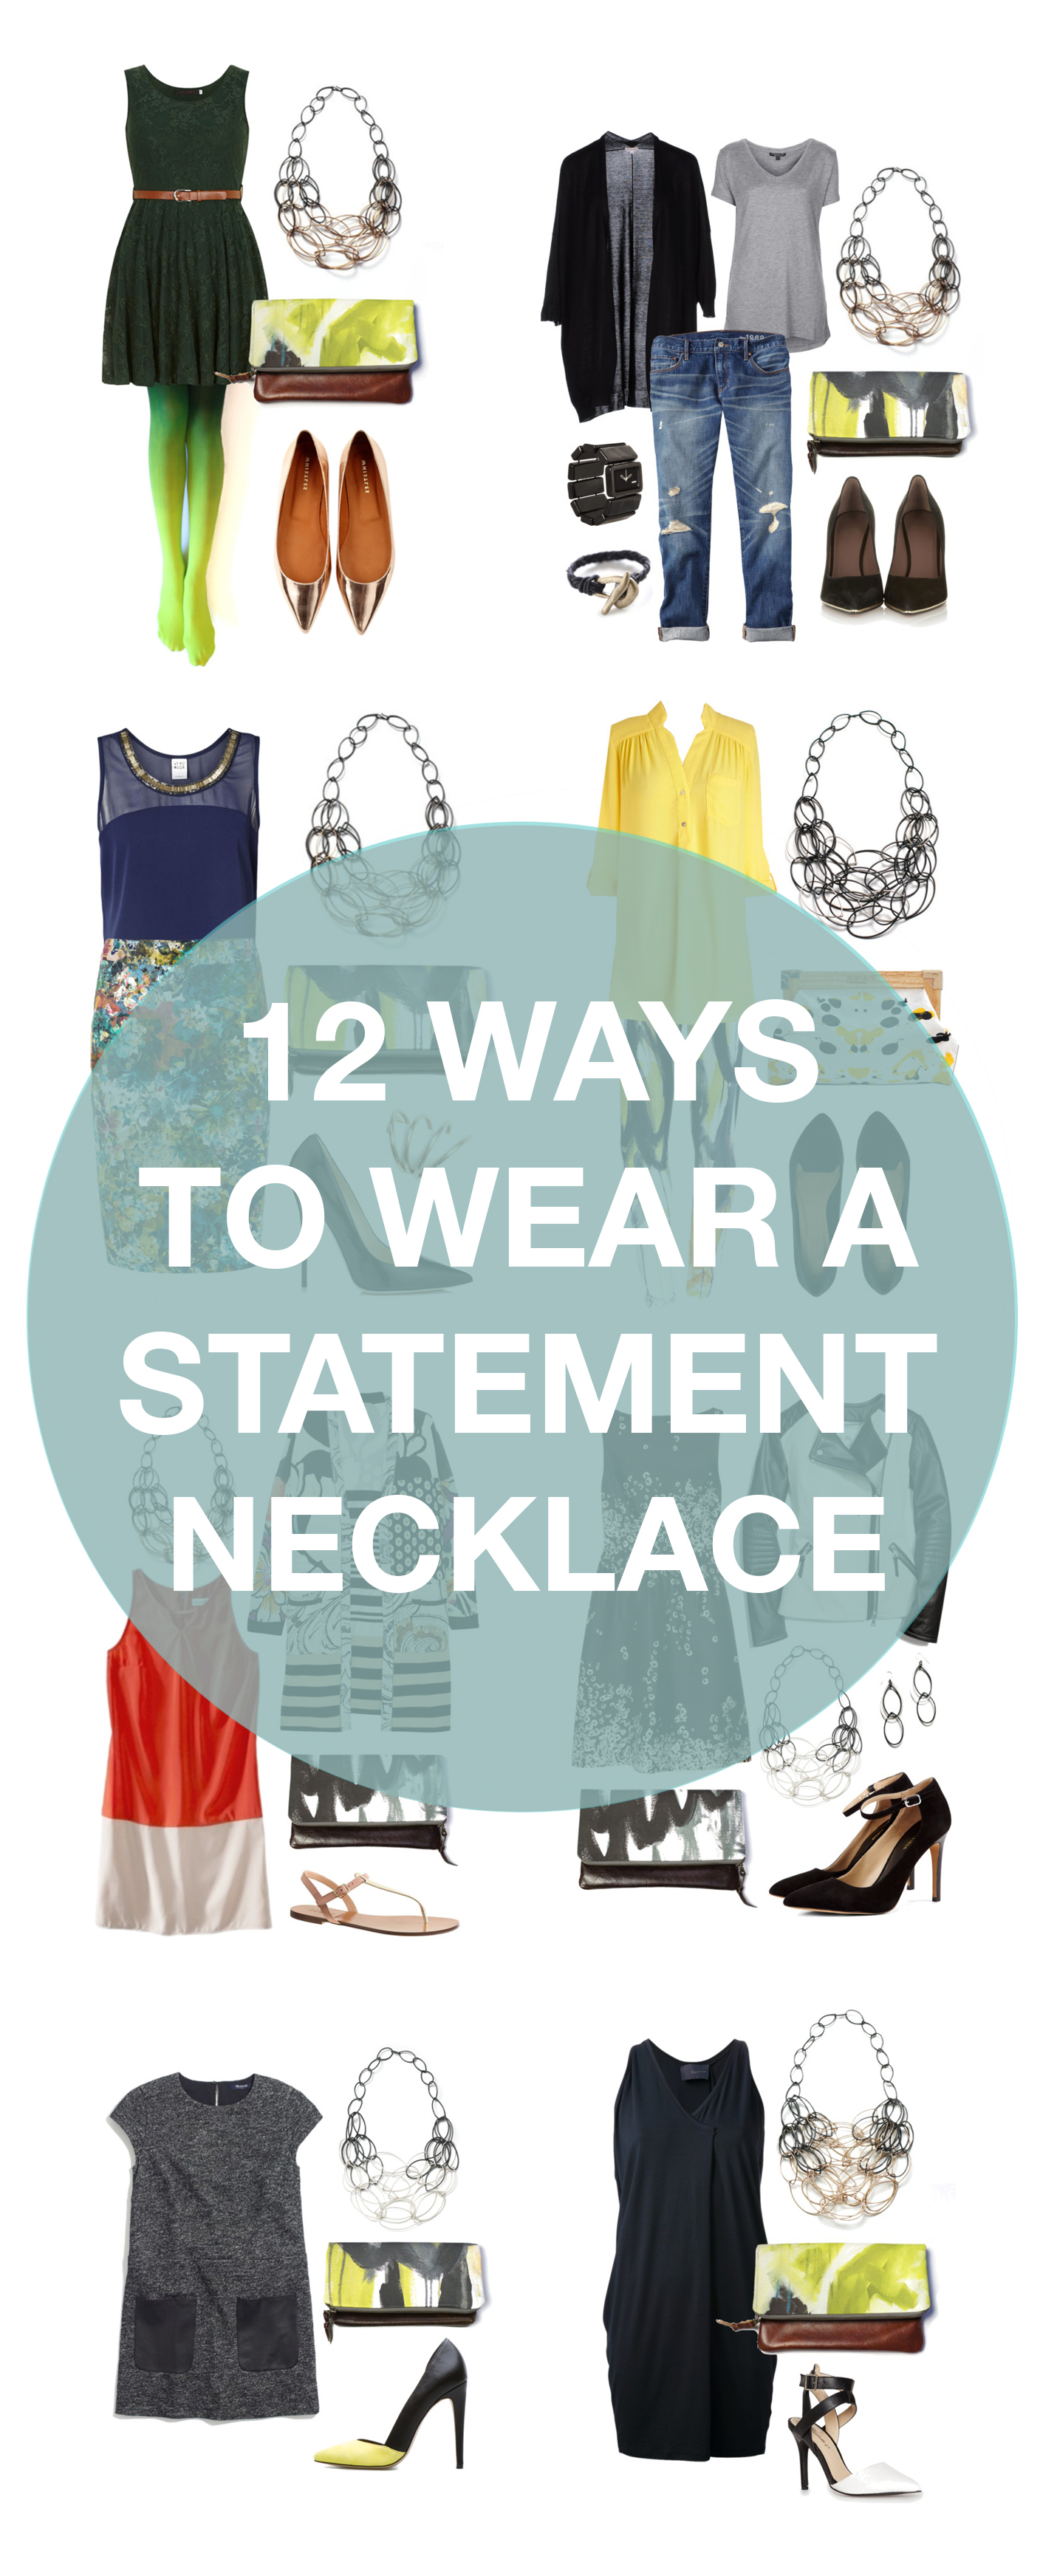 how to wear a statement necklace // 12 outfits that look better with a statement necklace via megan auman